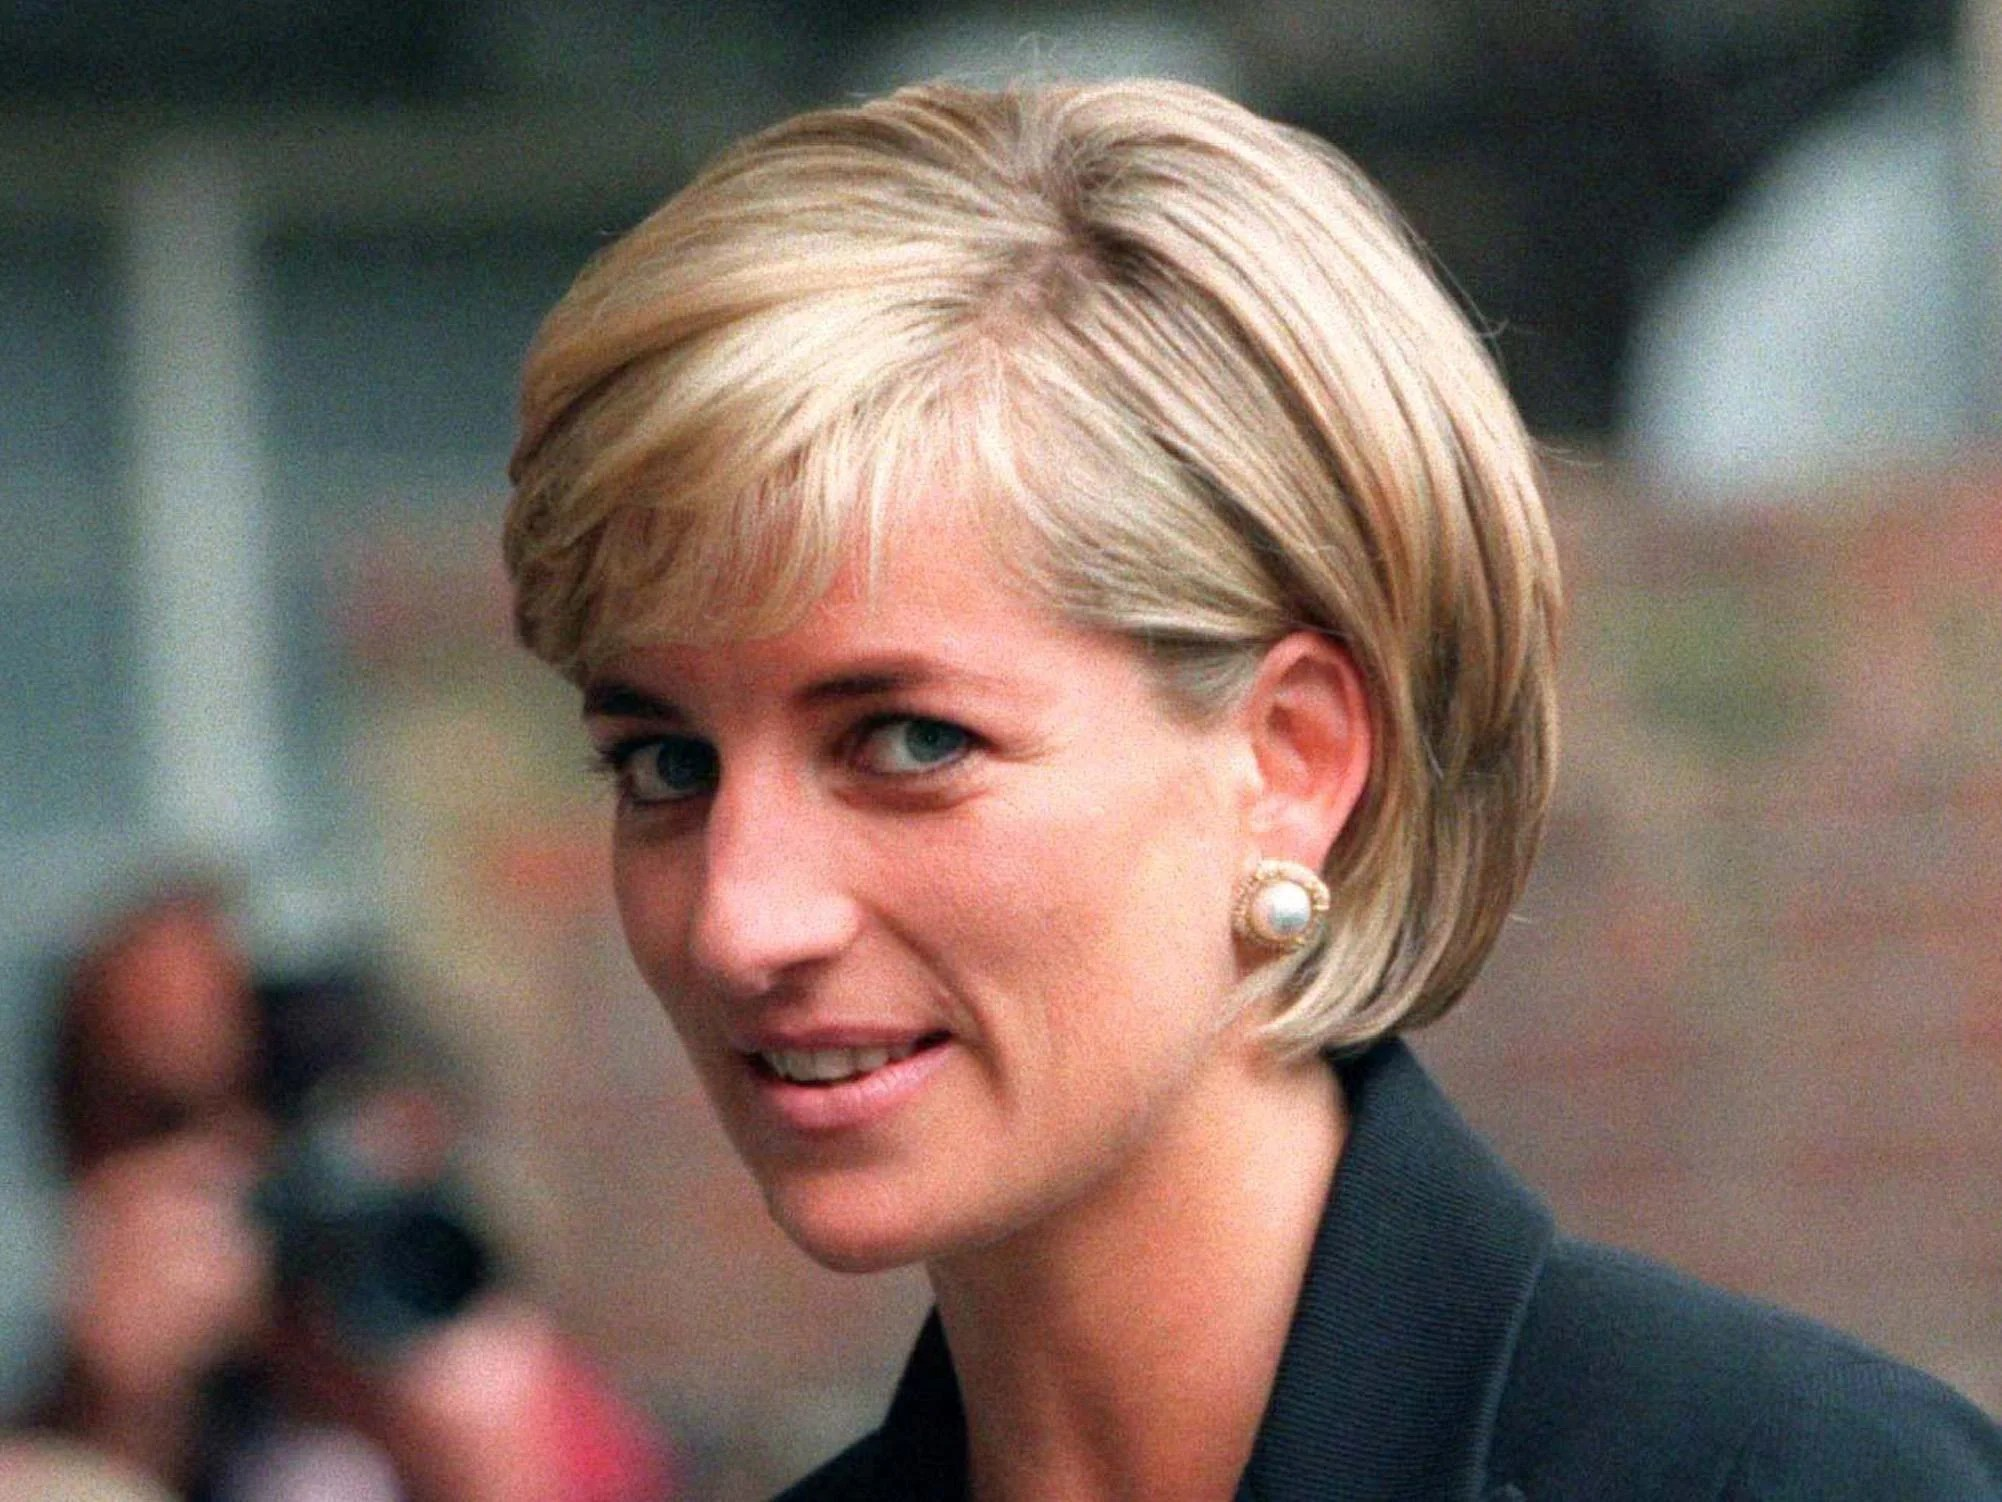 Princess Diana was delighted by Charles s Camillagate humiliation